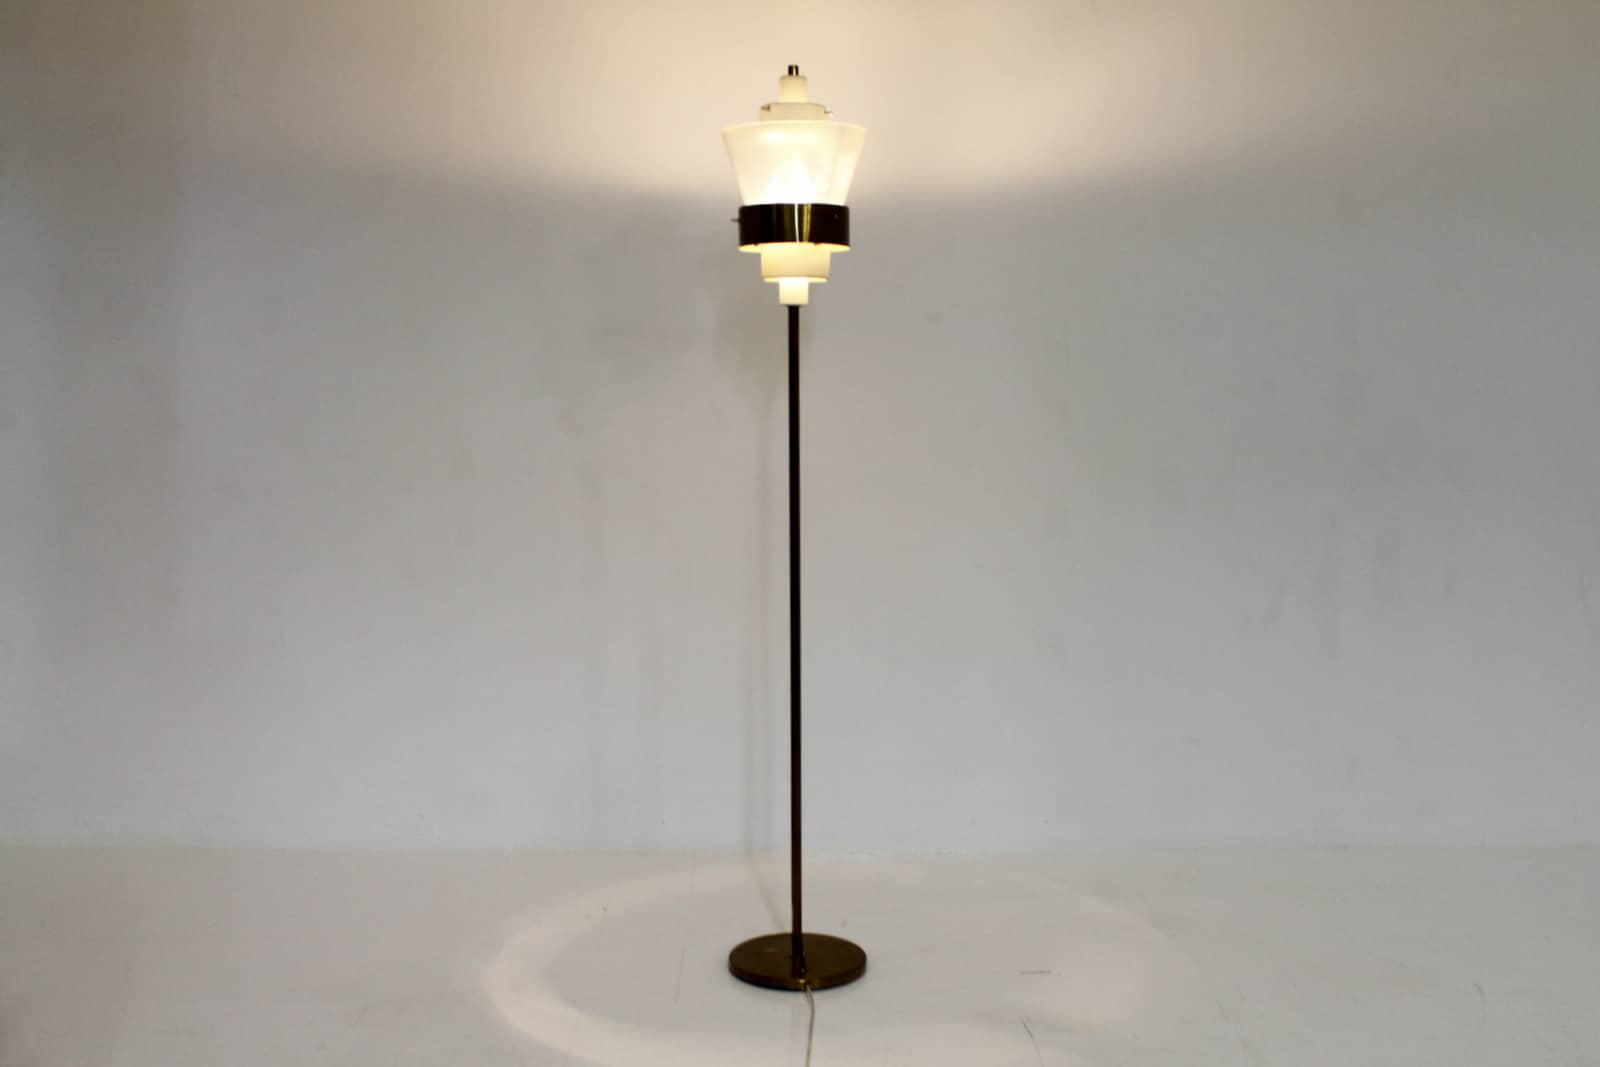 Stilnovo Floor Lamp in Brass and Lucite, Italy circa 1950s